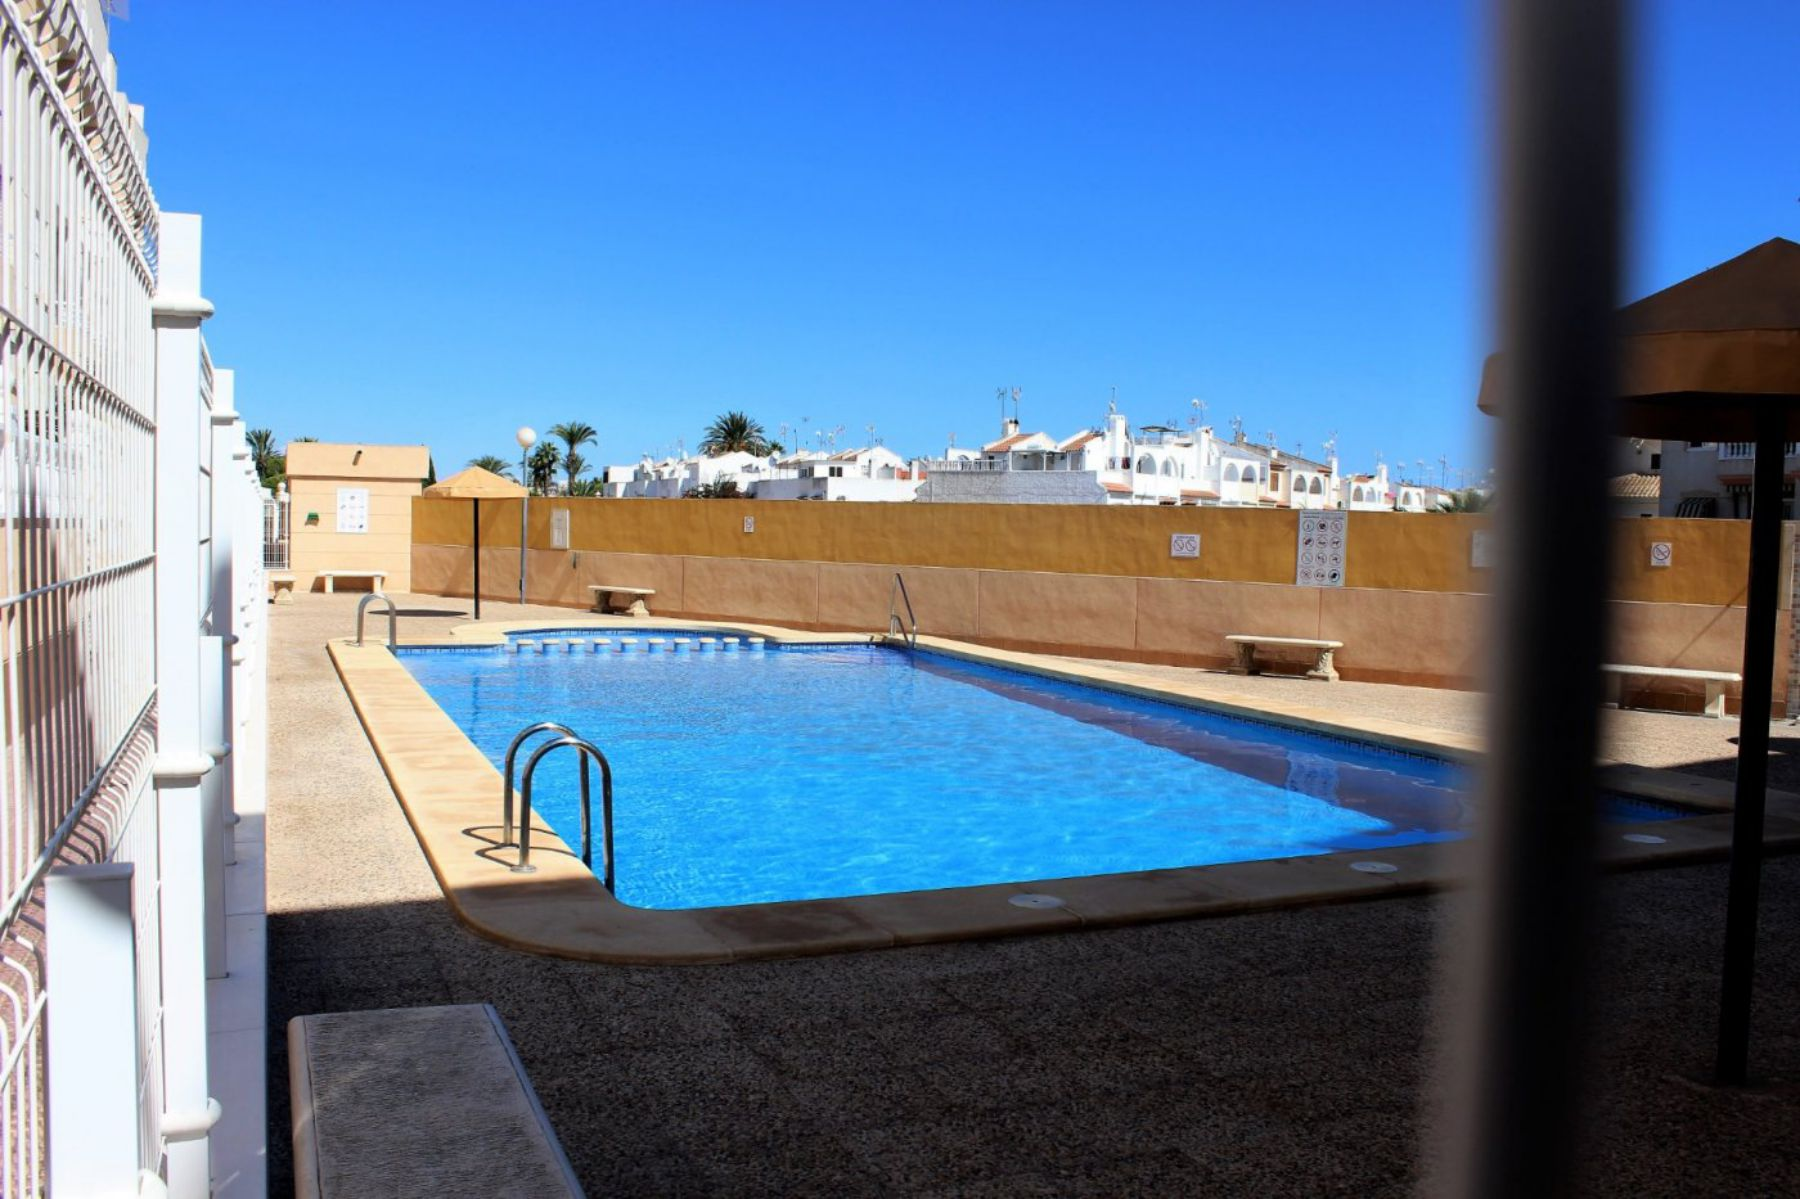 2 Bedrooms Apartment For Sale with Community Pool in Torrevieja